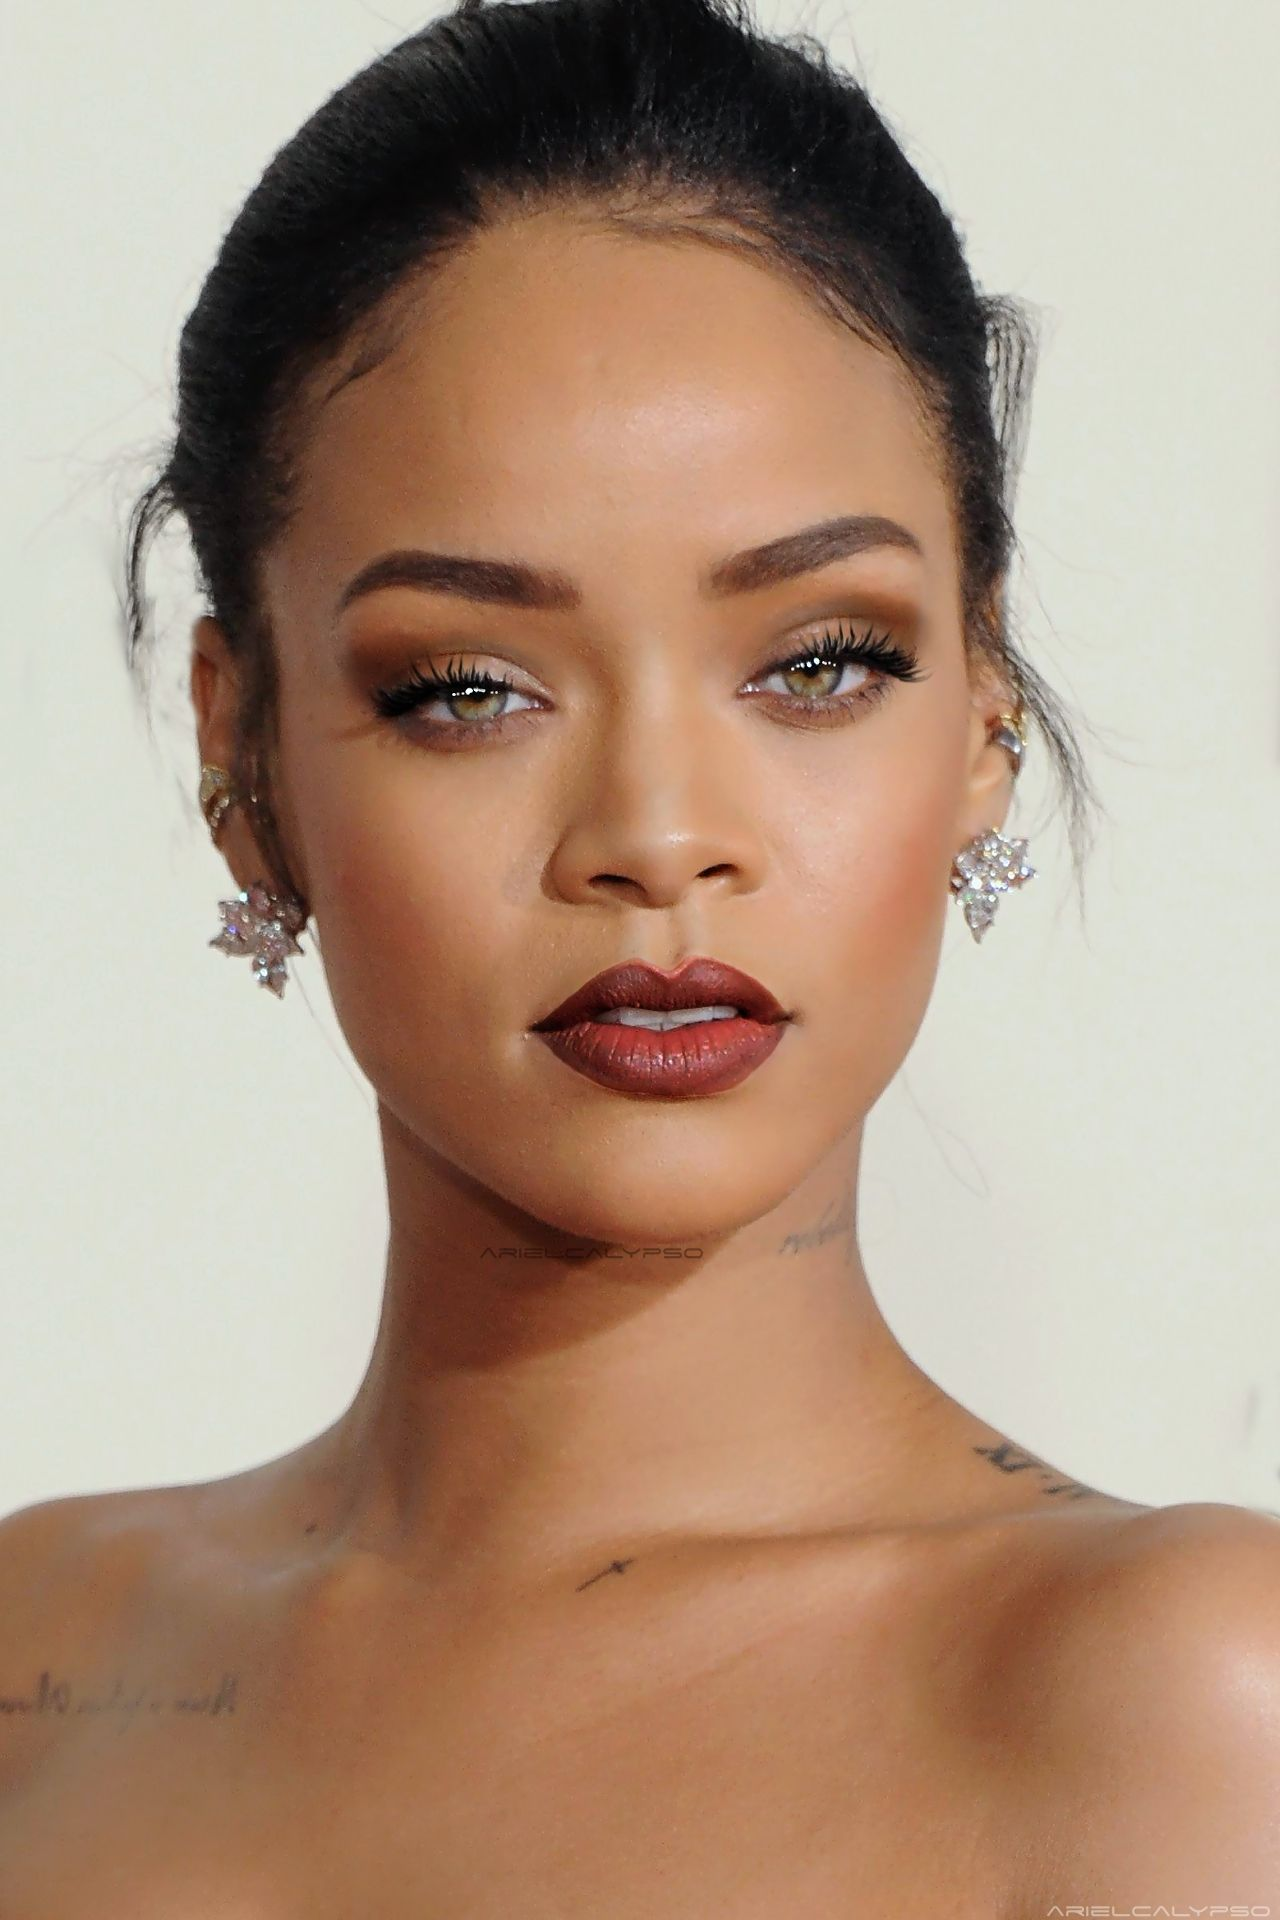 arielcalypso: Rihanna at the 57th Grammy awards, red ... Rihanna